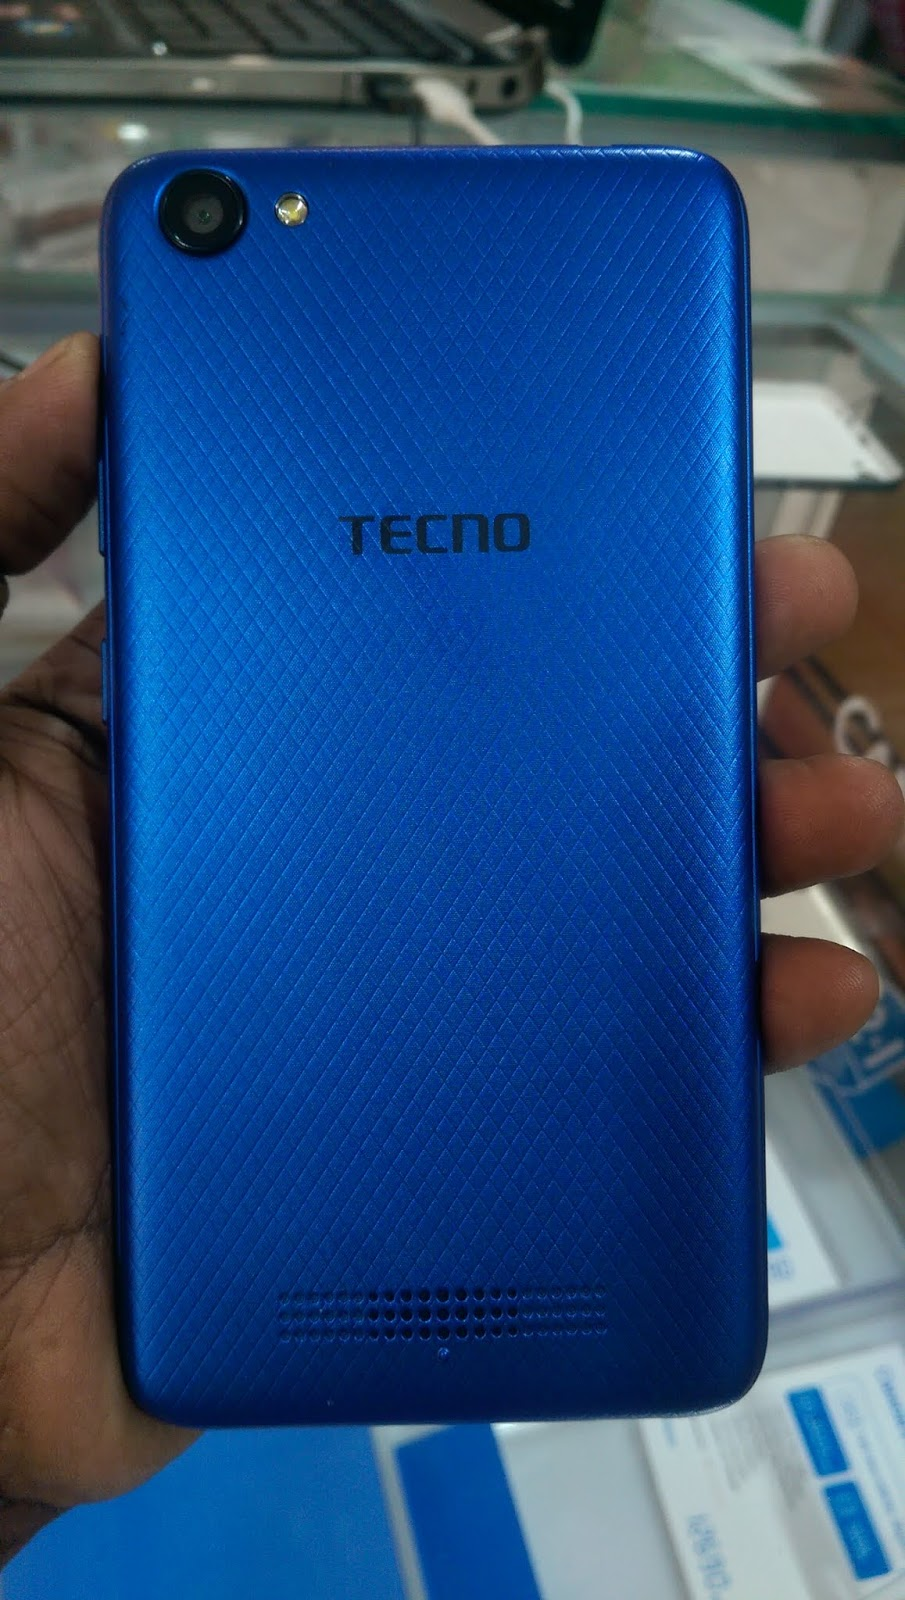 How To Install Stock Rom On Tecno Wx3 Wx3p Firmware File